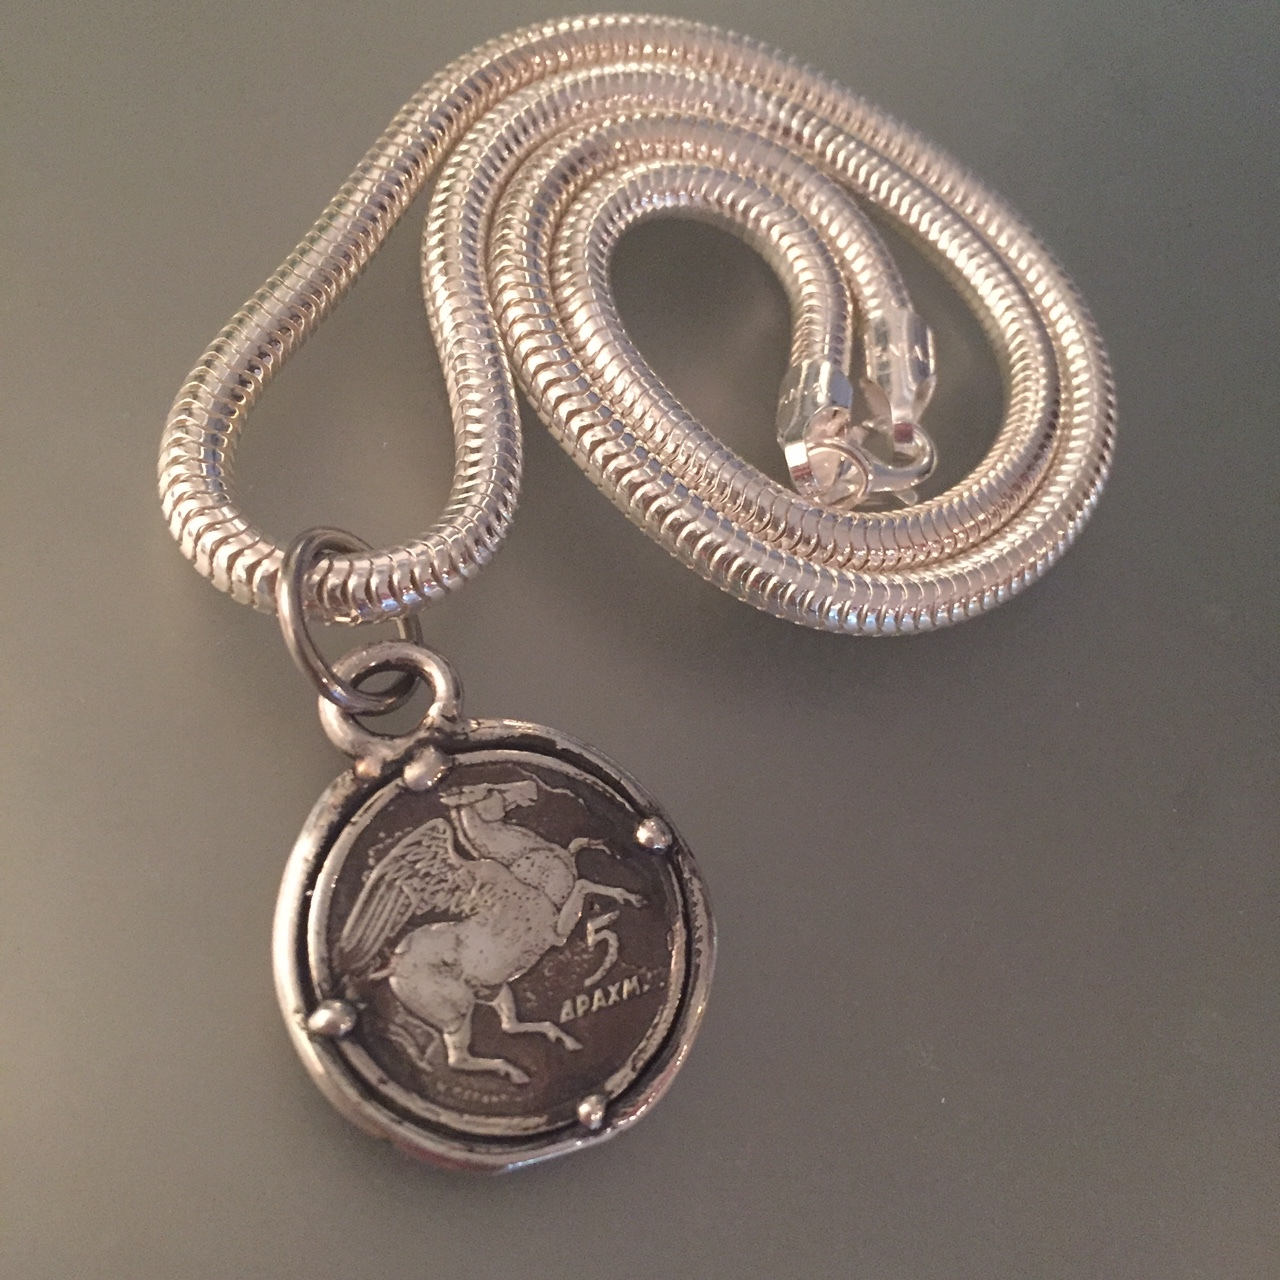 Pegasus on Rope Chain